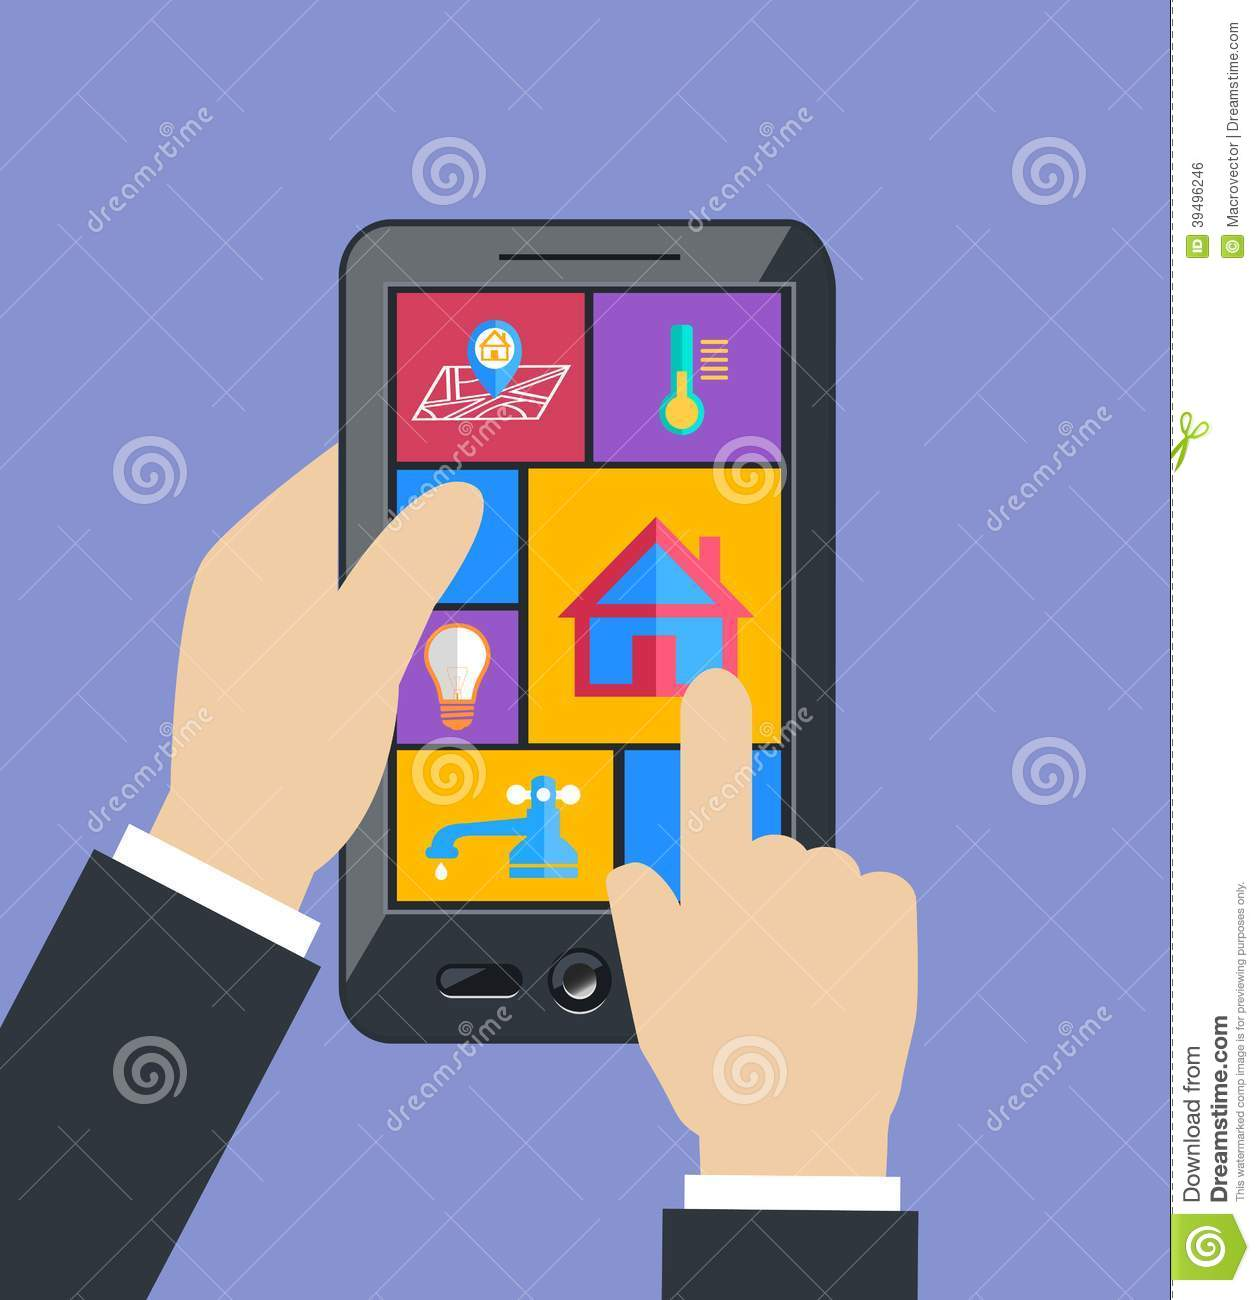 Hand Holding Tablet Controls Smart Home Utilities Stock